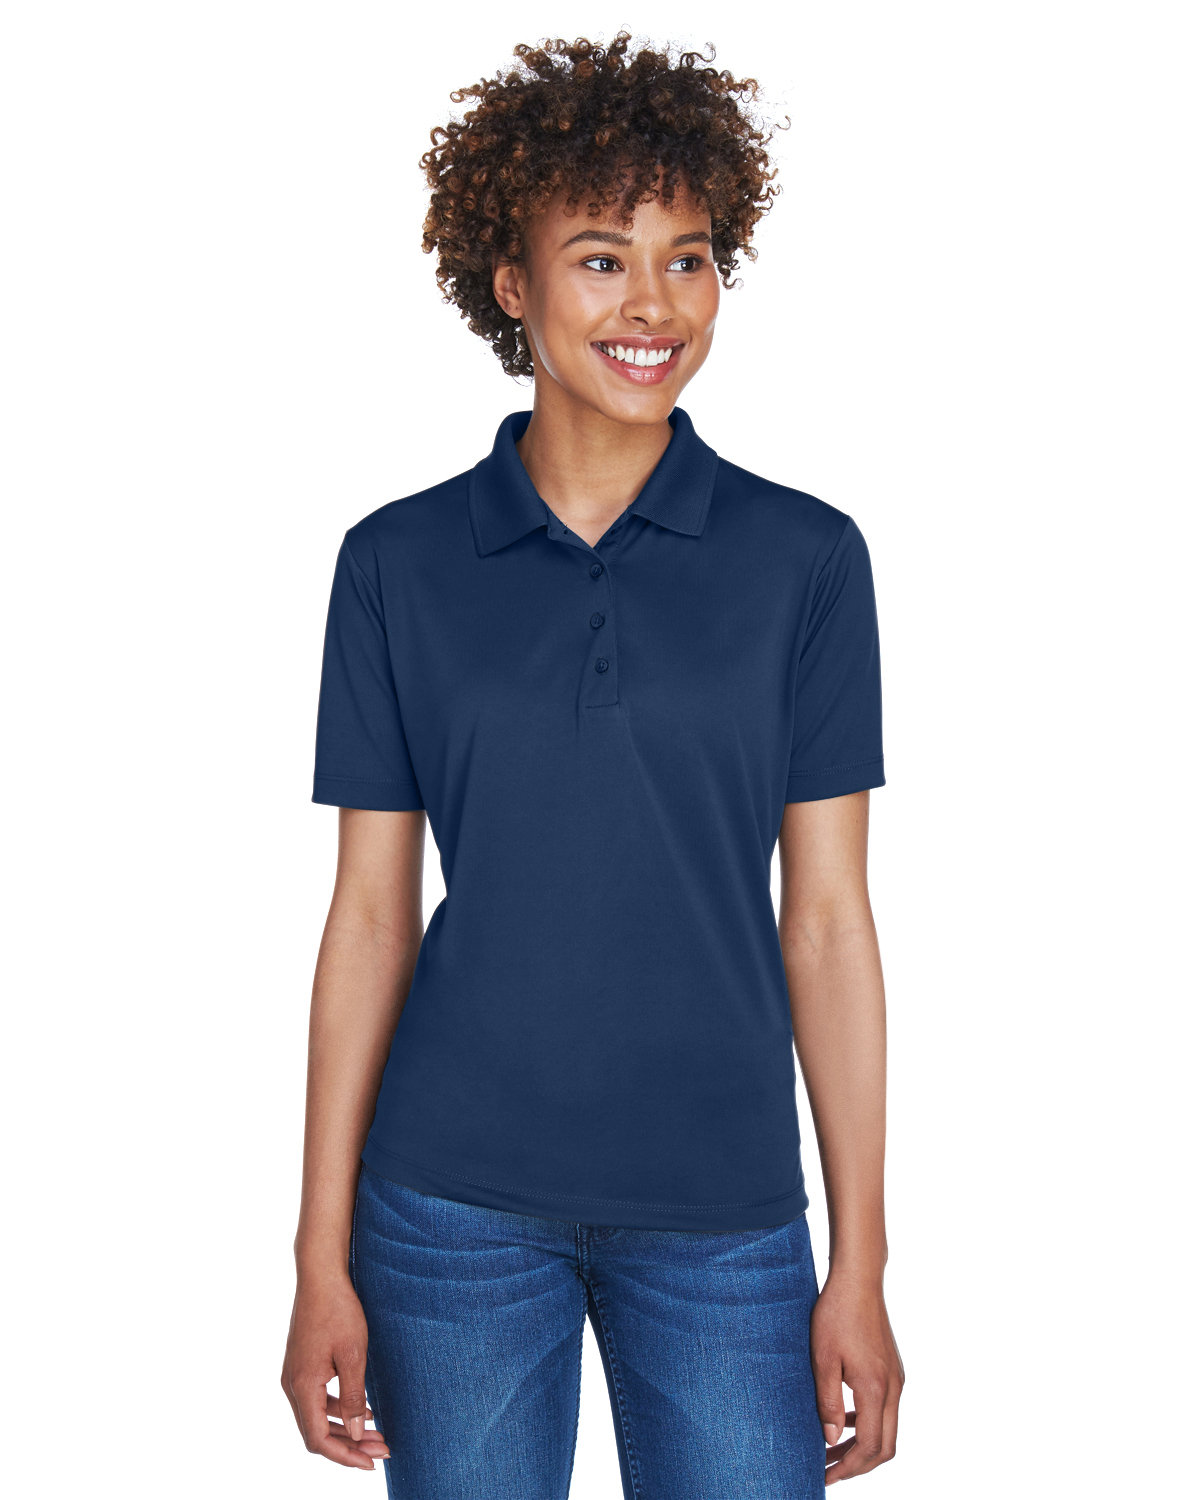 UltraClub Ladies' Cool & Dry 8-Star Elite Performance Interlock Polo NAVY